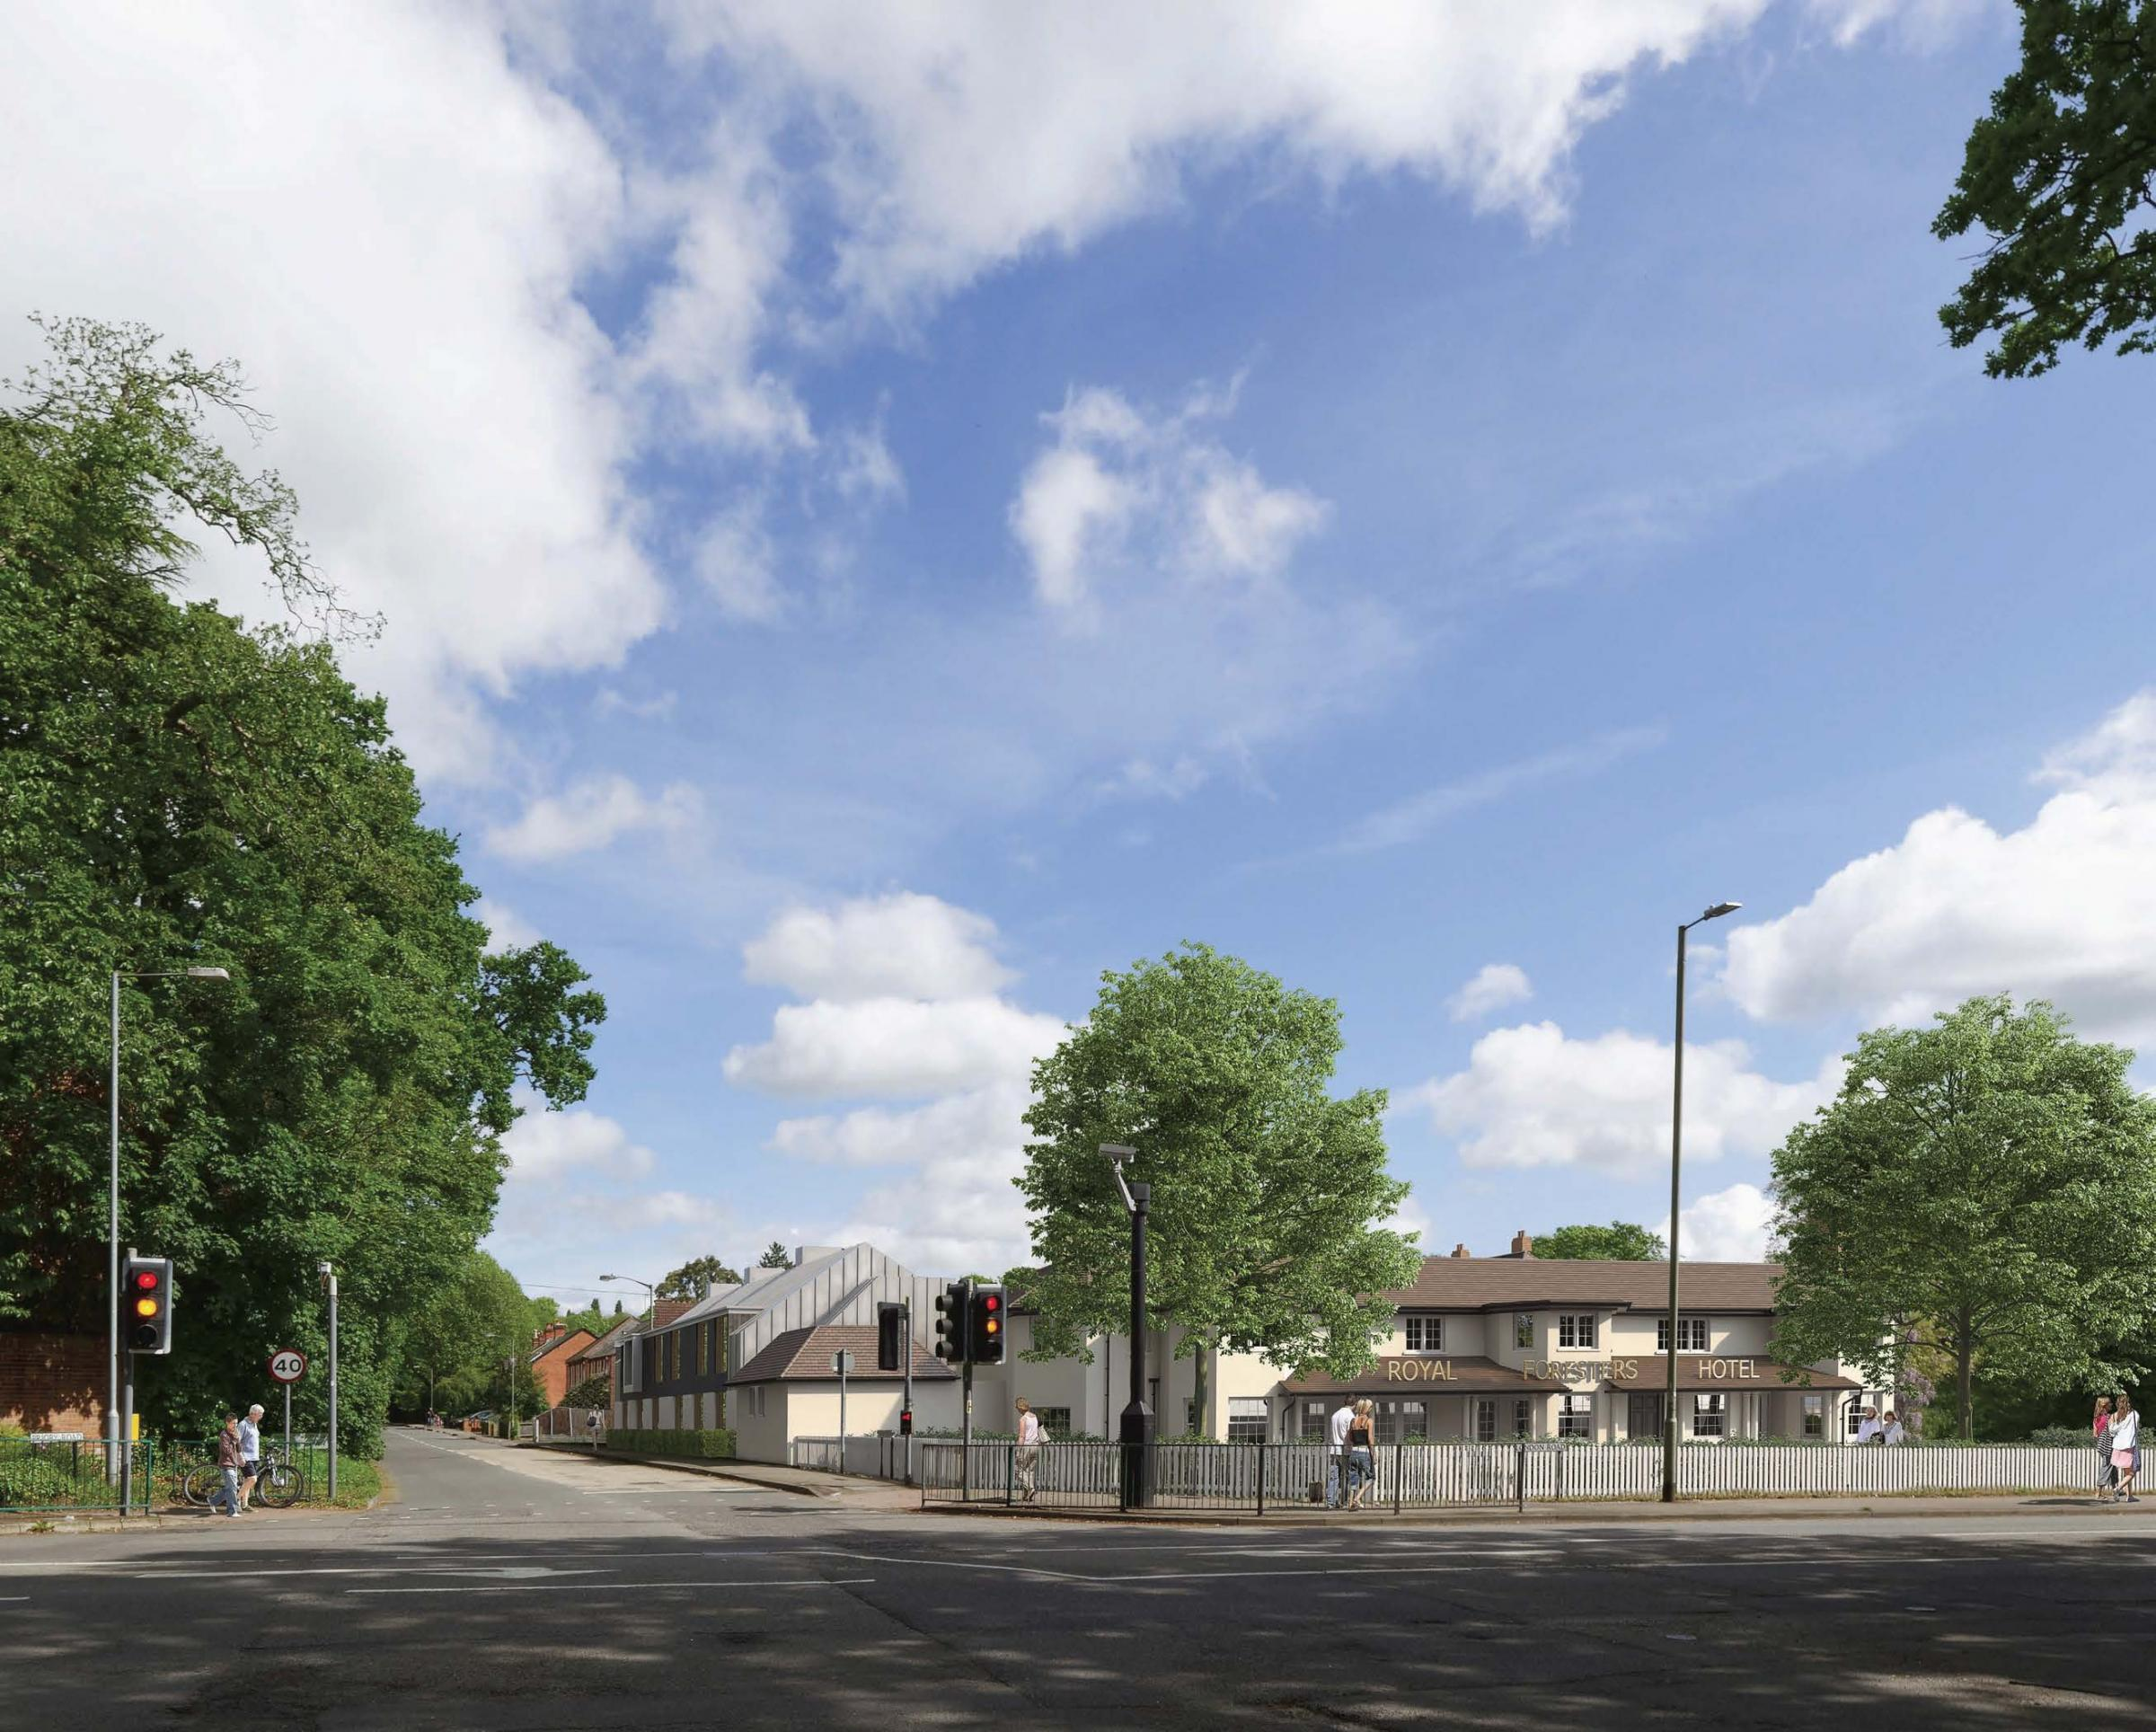 Pub development worth £10m to open in early June